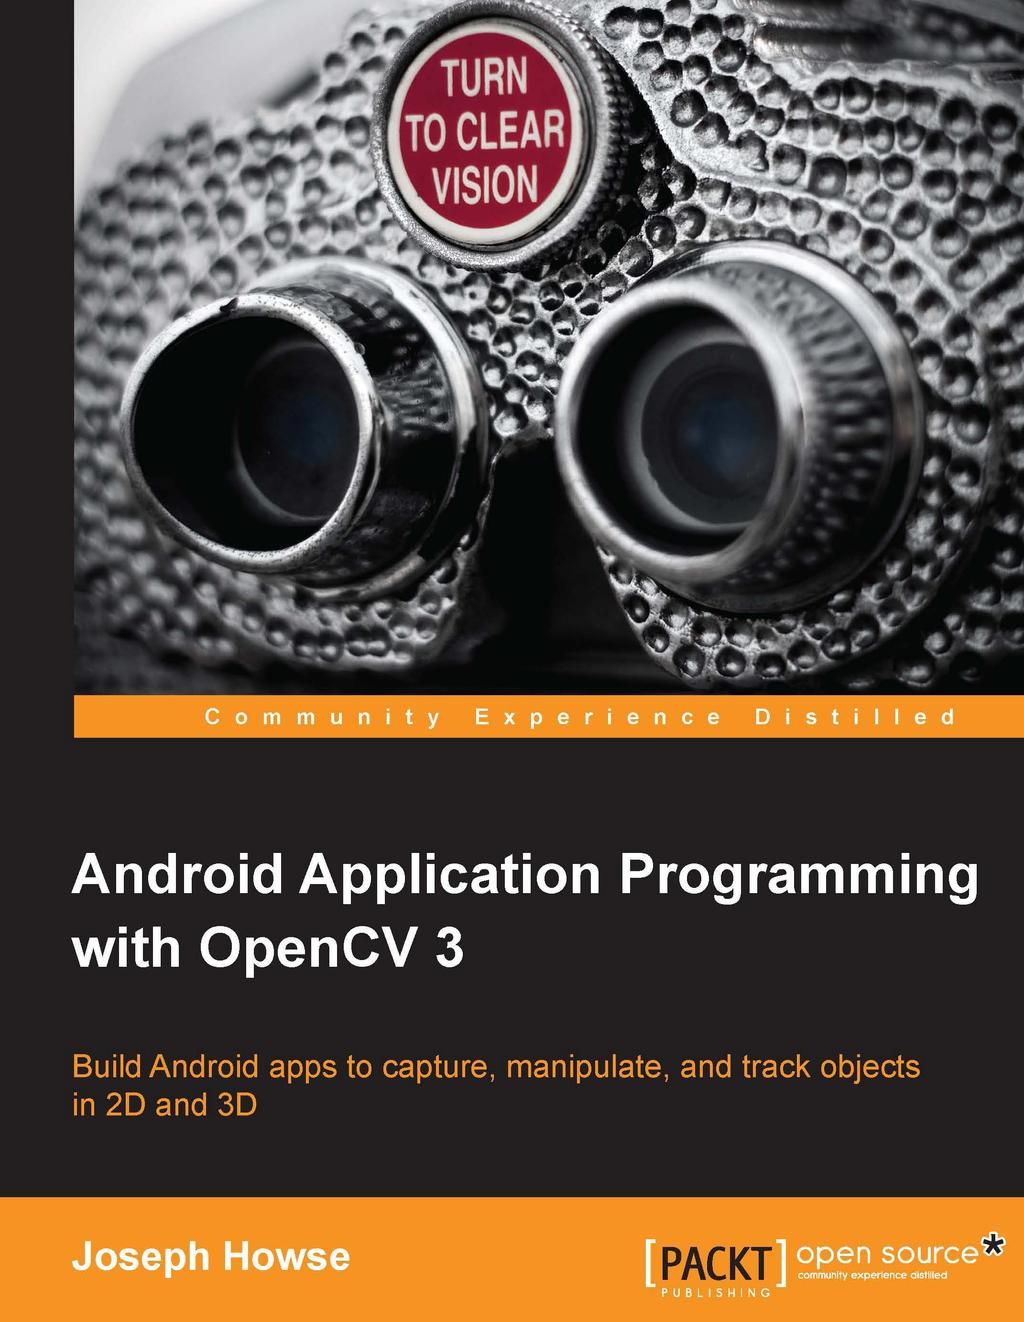 Android Application Programming with OpenCV 3 - PDF